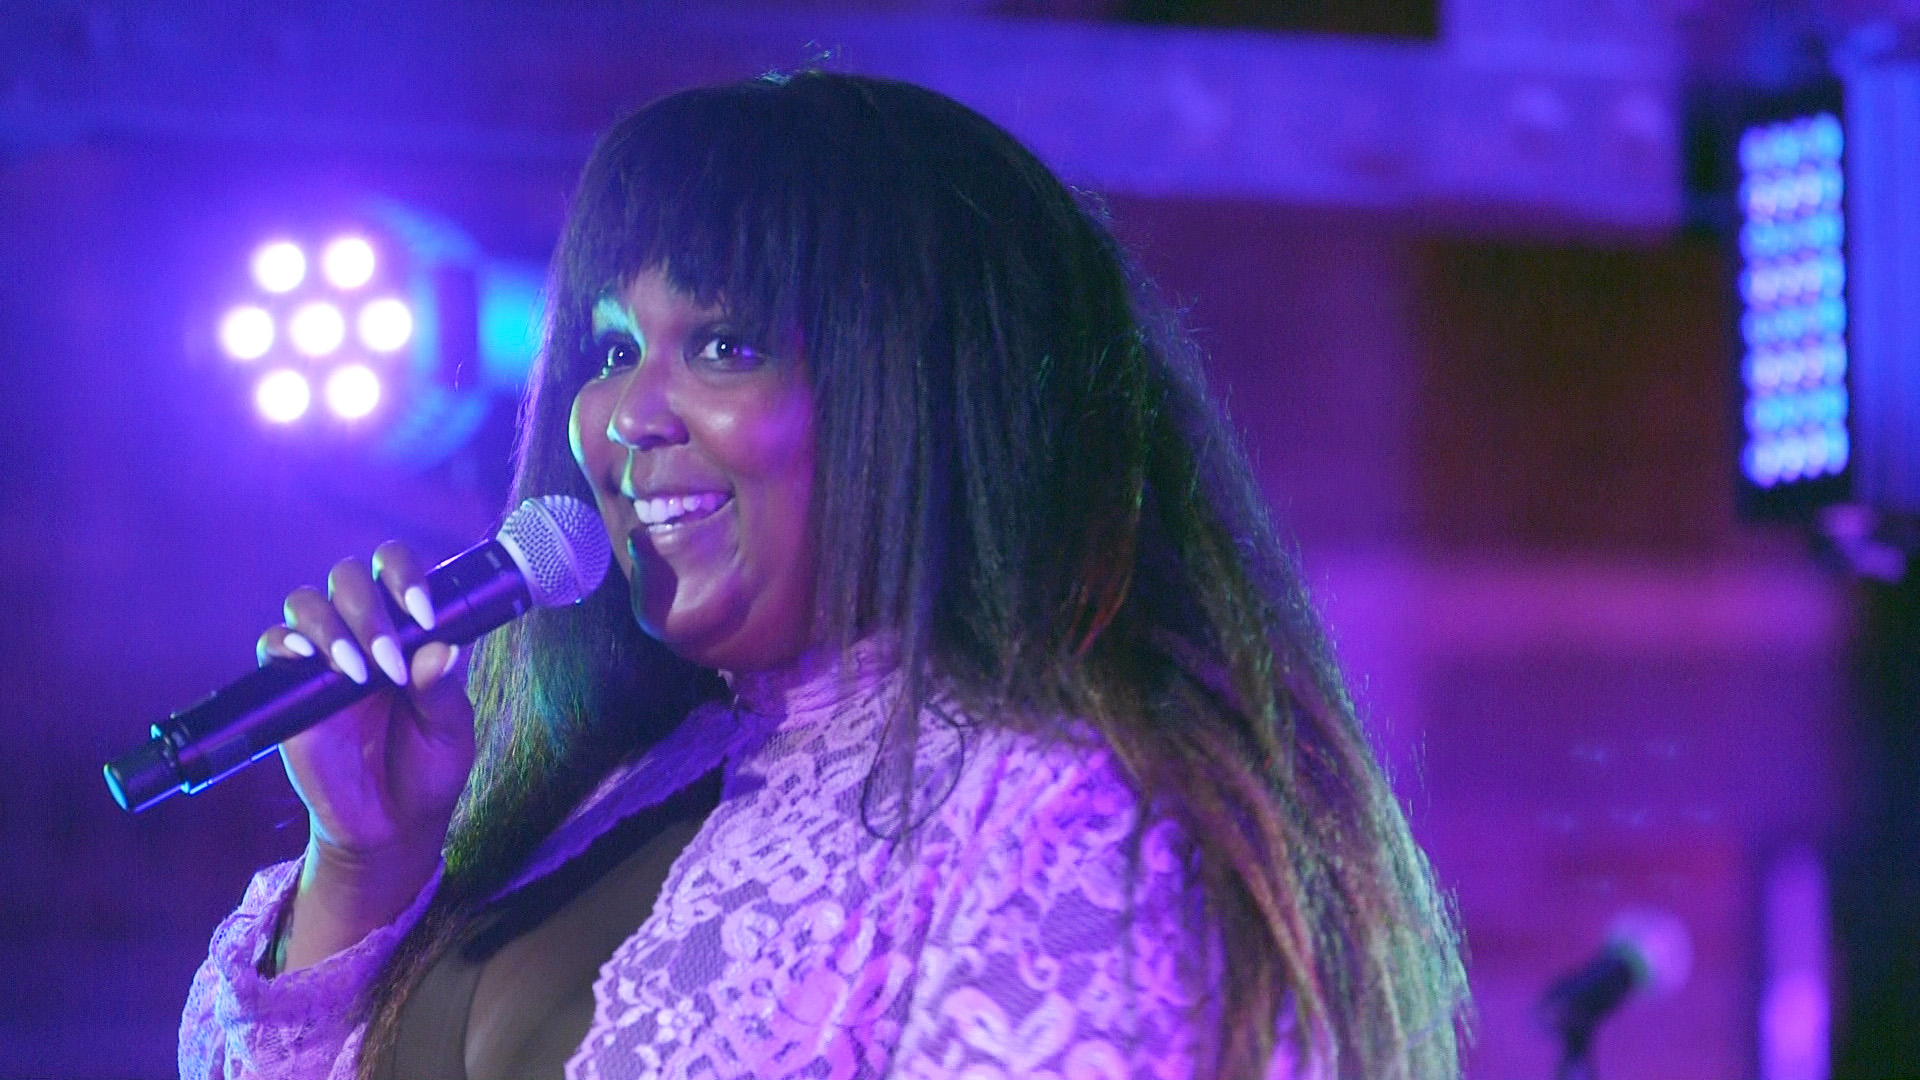 LIZZO'S LIVING LARGE - Owning your place in the world is difficult, but R&B singer-songwriter Lizzo refuses to play small.Season 3, Episode 2